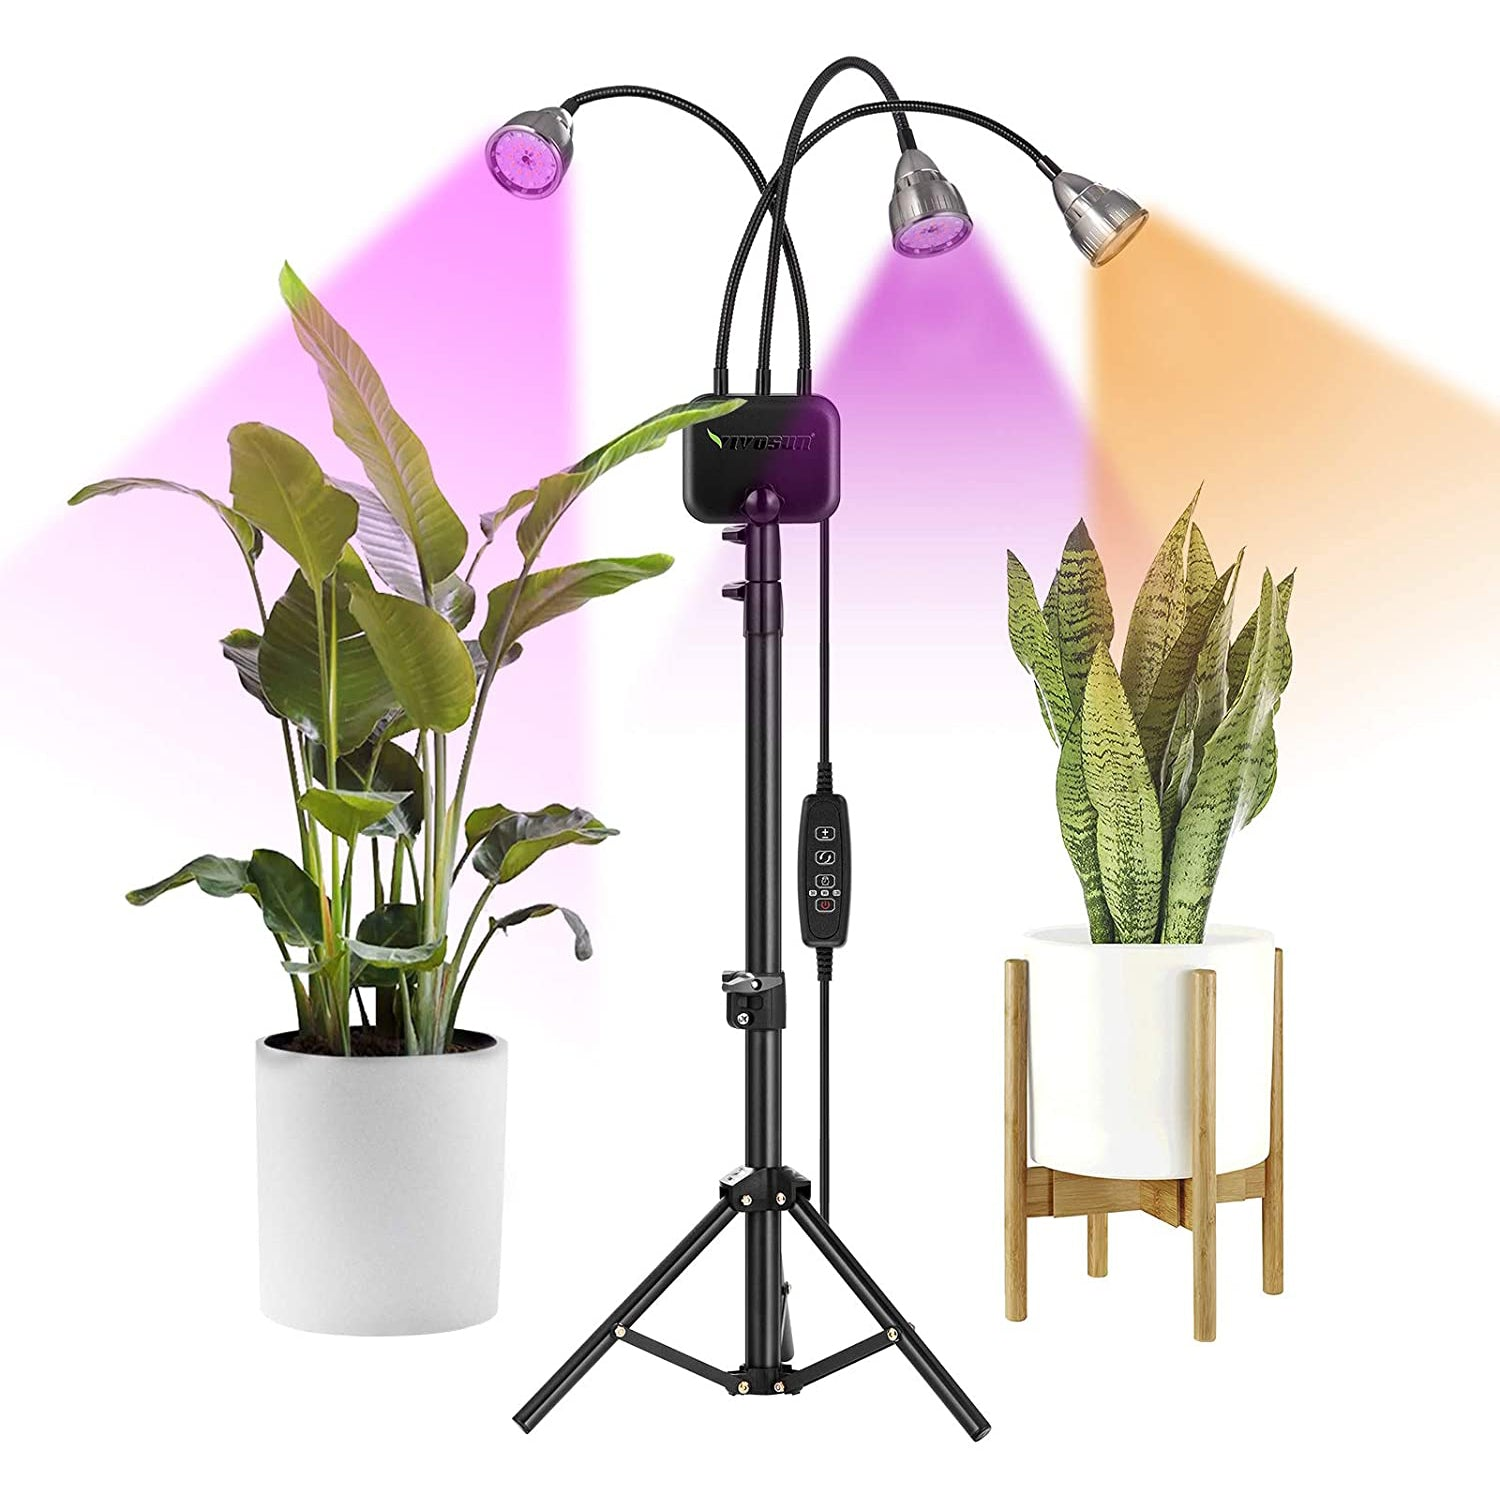 VIVOSUN Tri-Head 60W LED Grow Lights with Stand for Indoor Plants